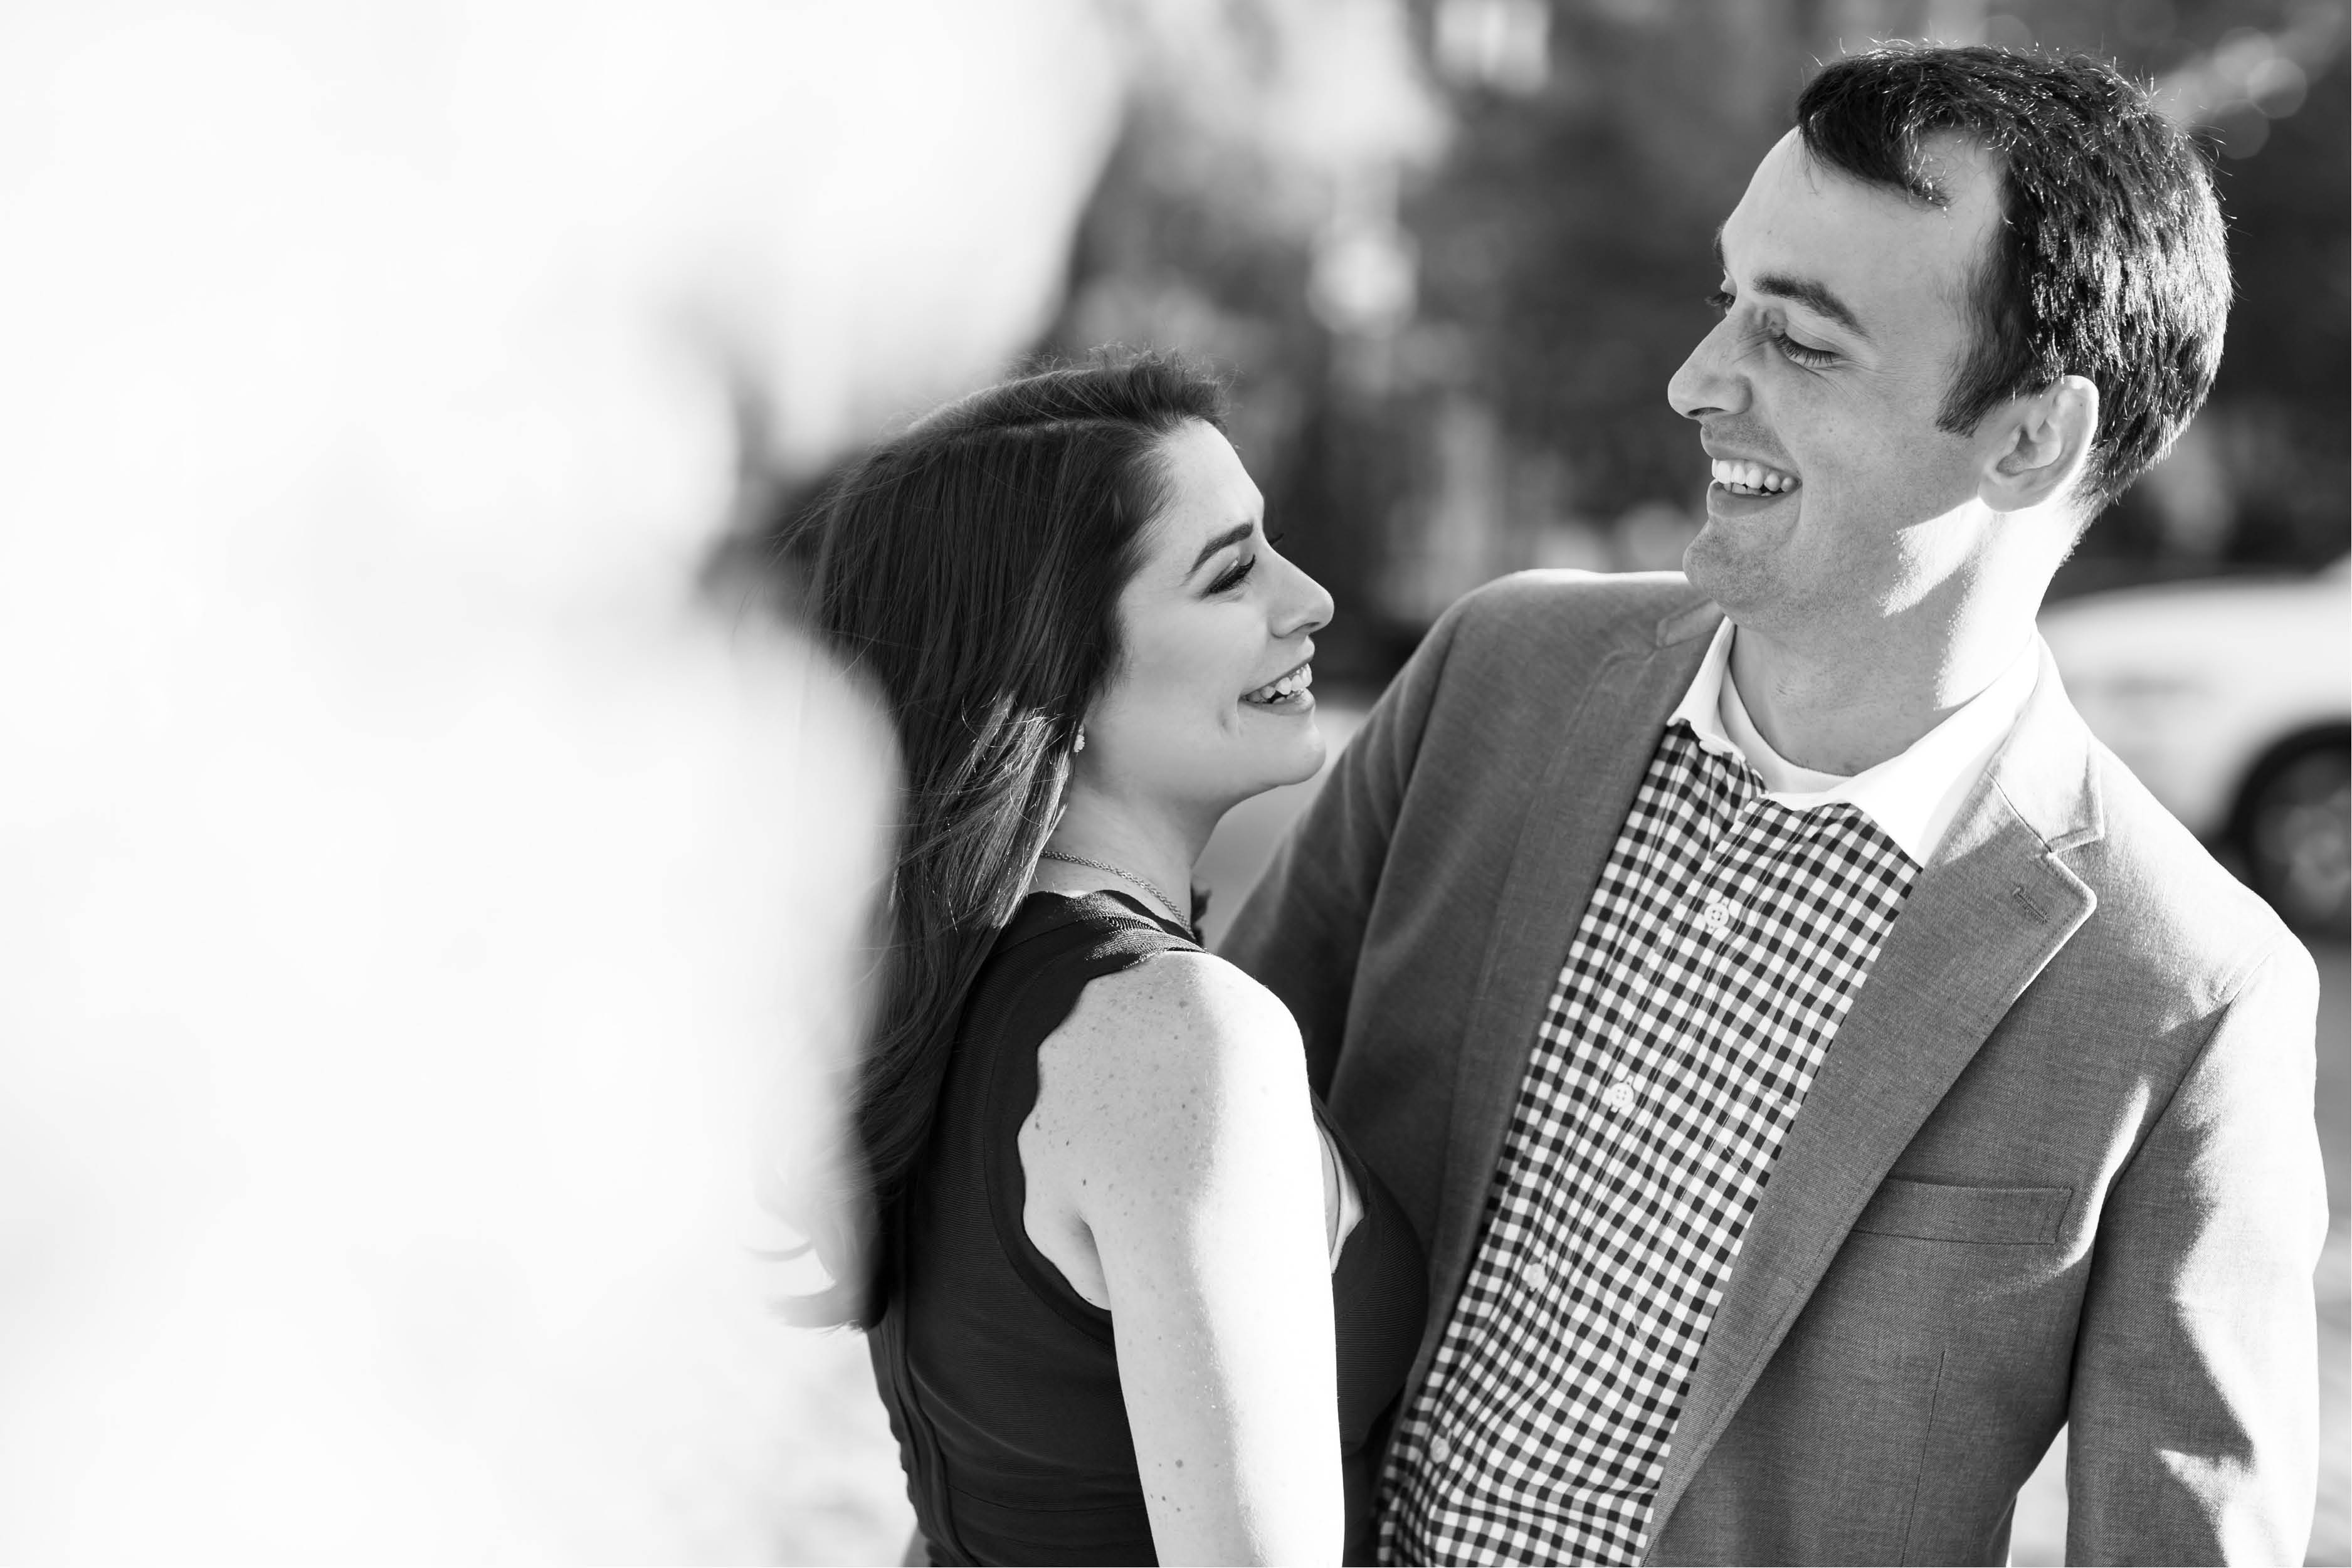 Emma_cleary_photography Dumbo Engagement shoot6